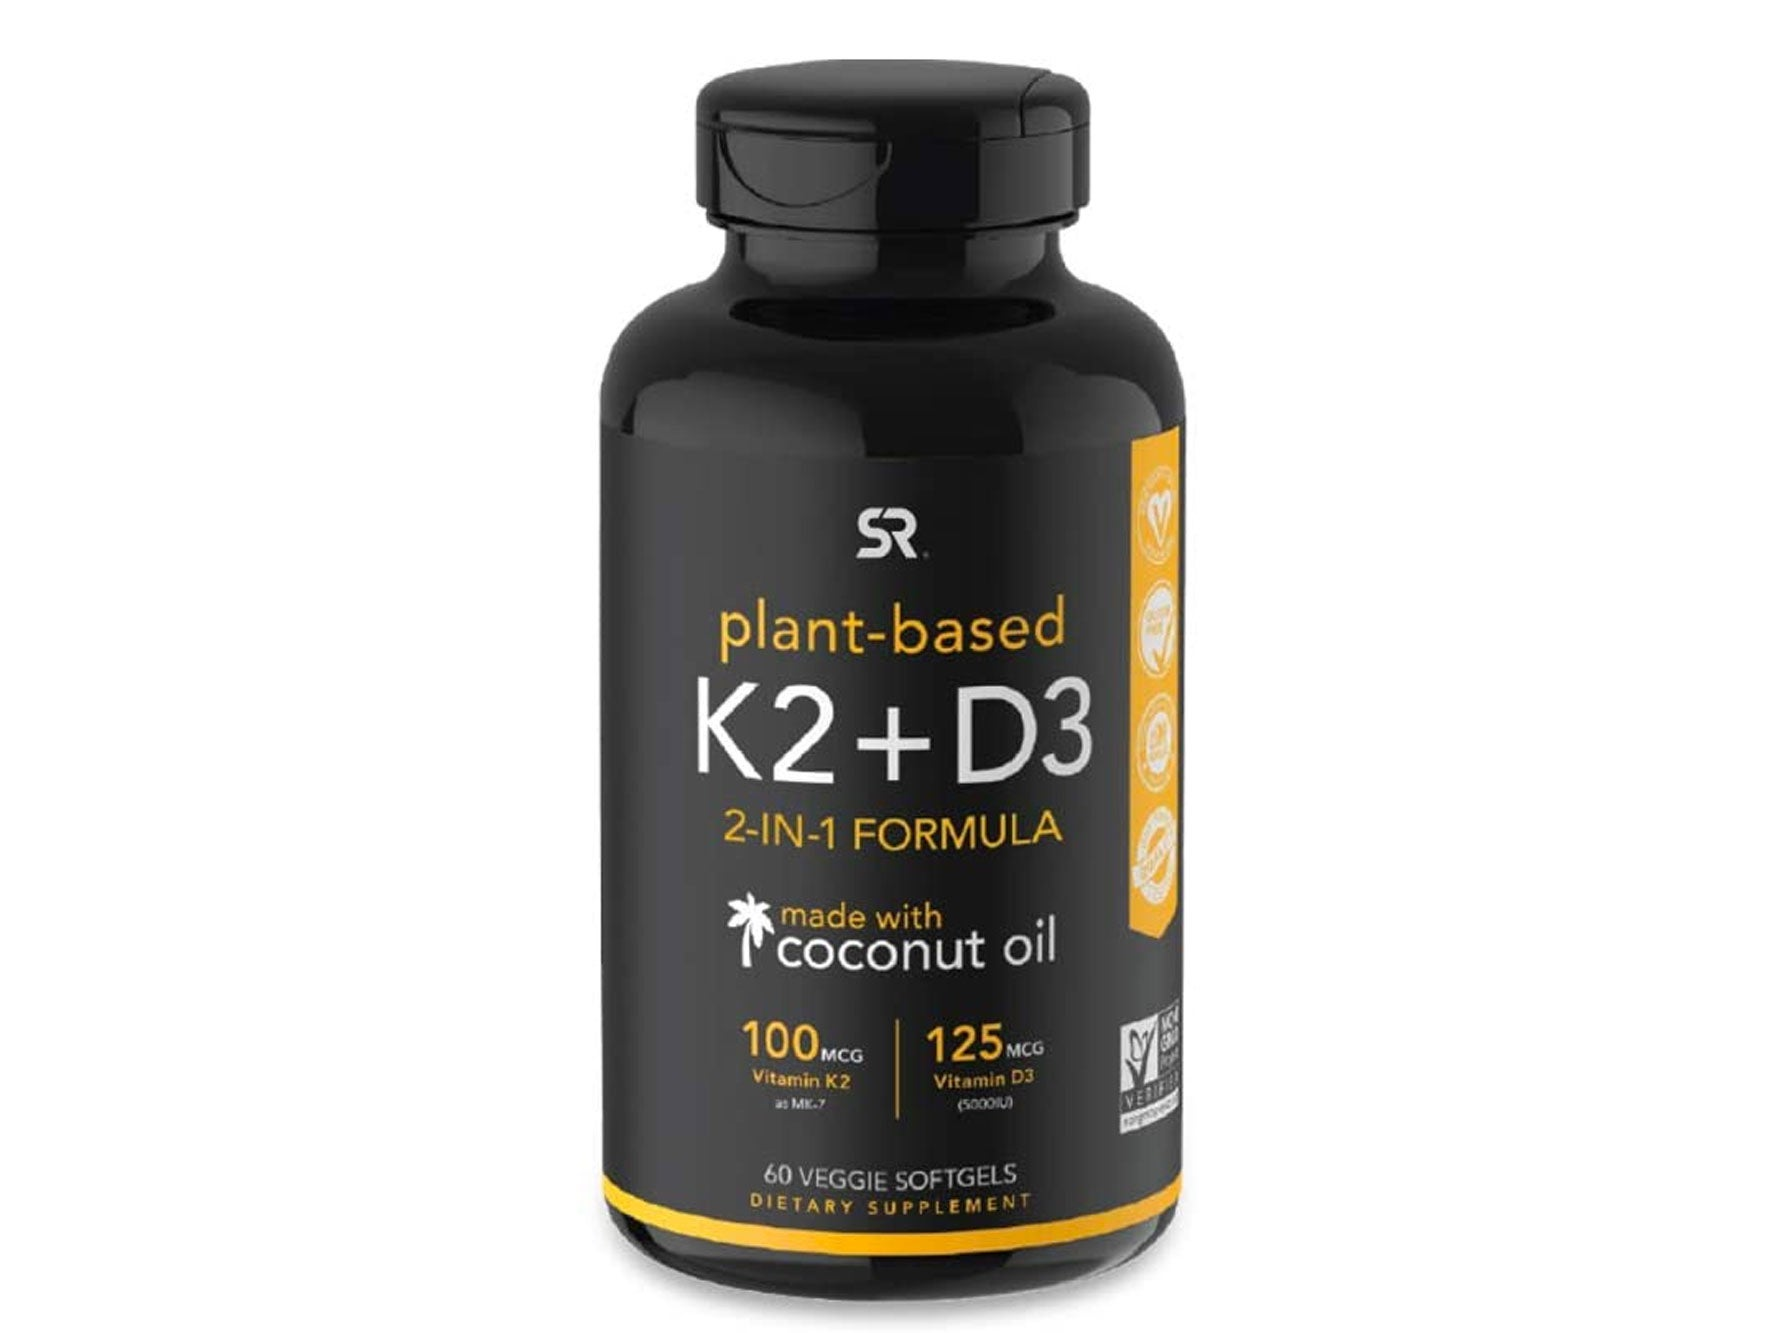 Vitamin K2 + D3 with Organic Coconut Oil for Better Absorption